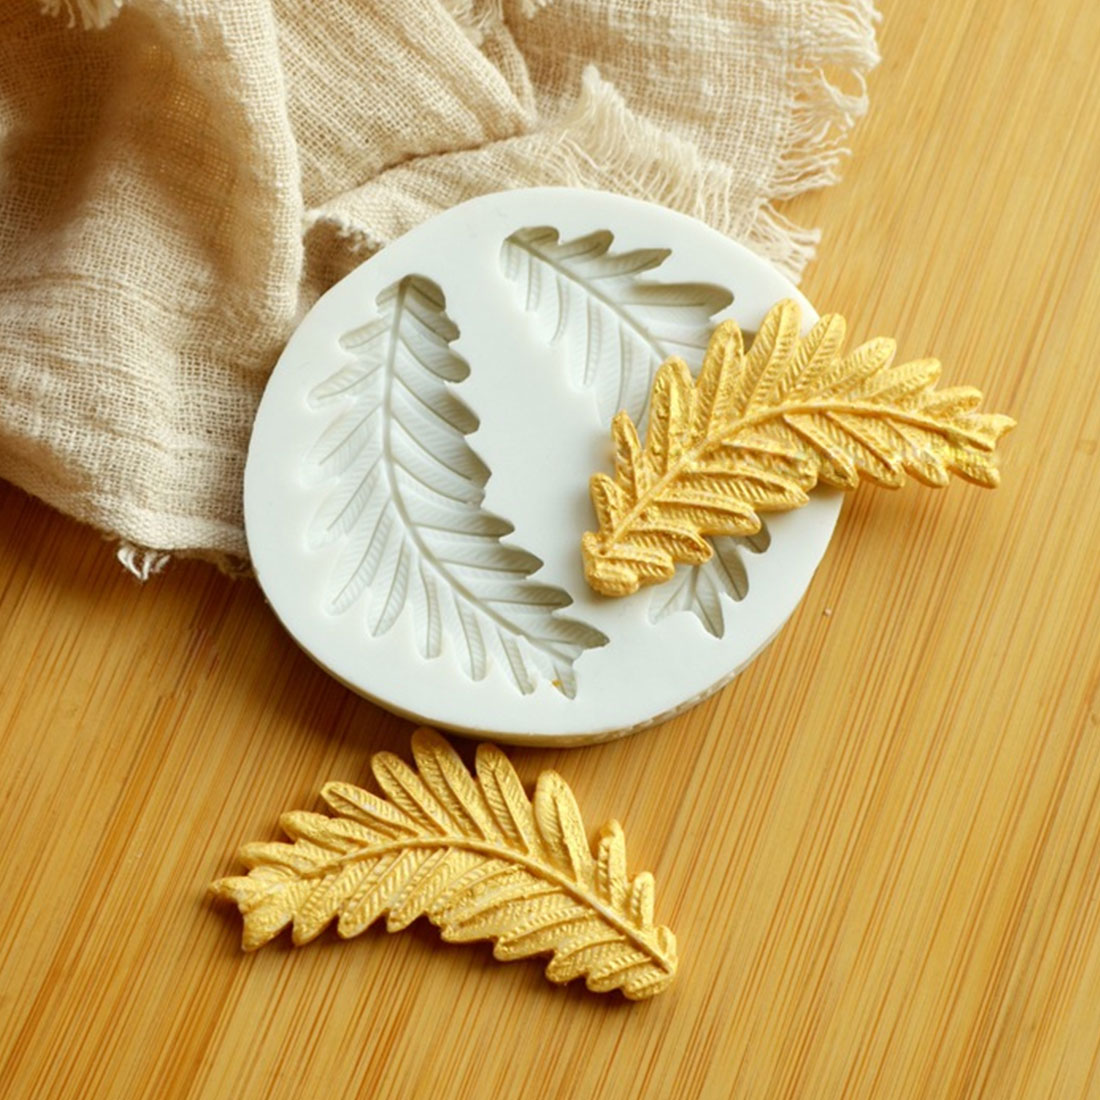 Home Leaves Seaweed Olive Branch Flower Petal Sugarcraft Silicone ...